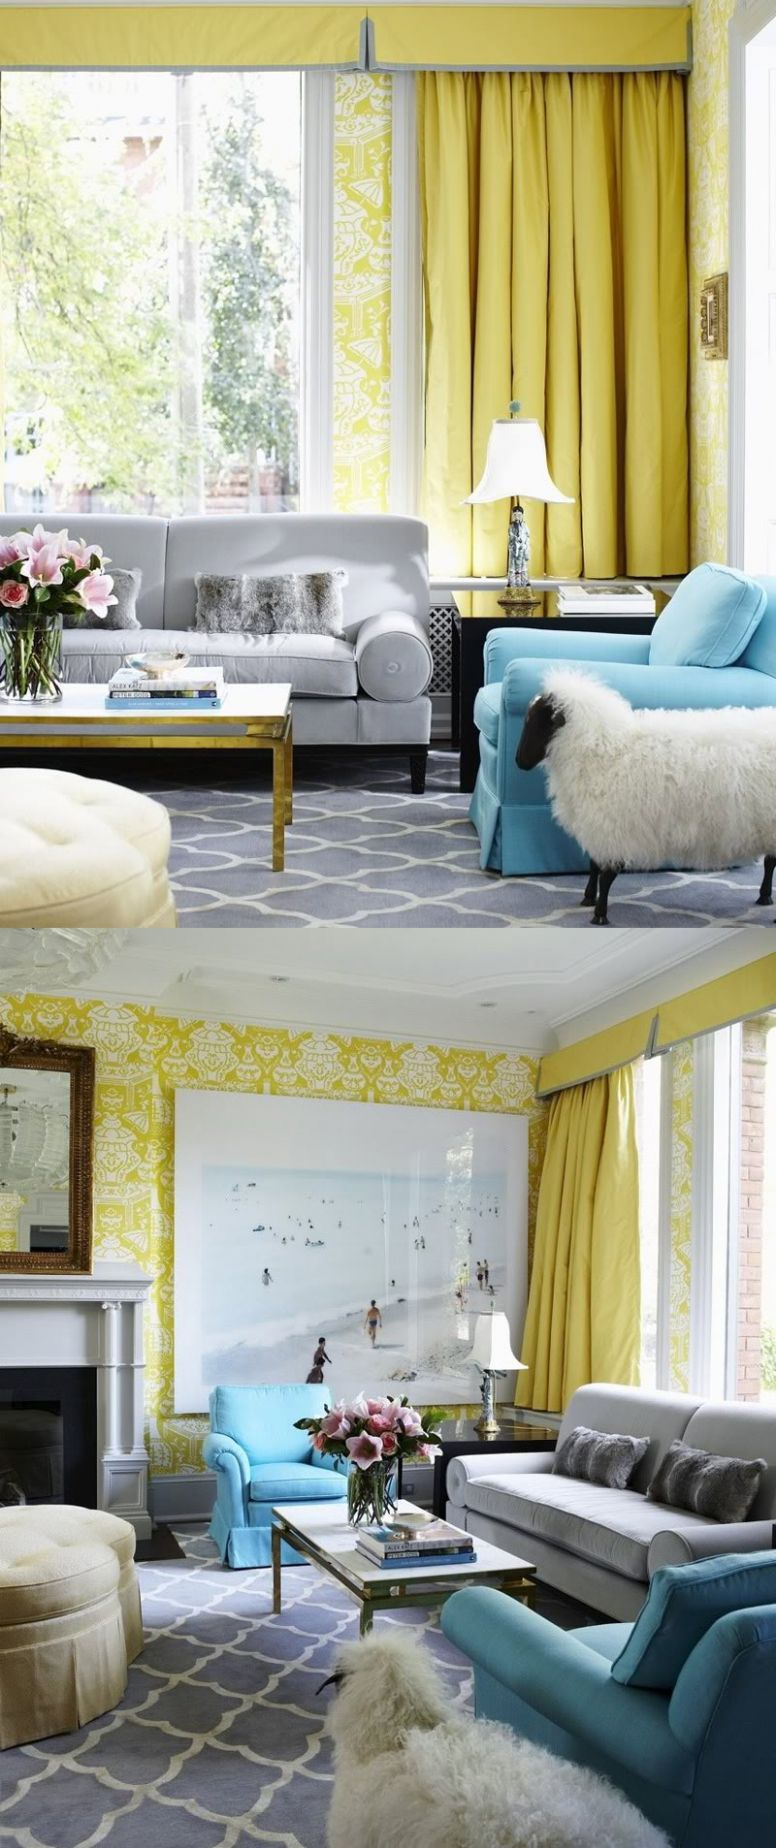 8 yellow duck egg blue grey living room | Interior Design Ideas